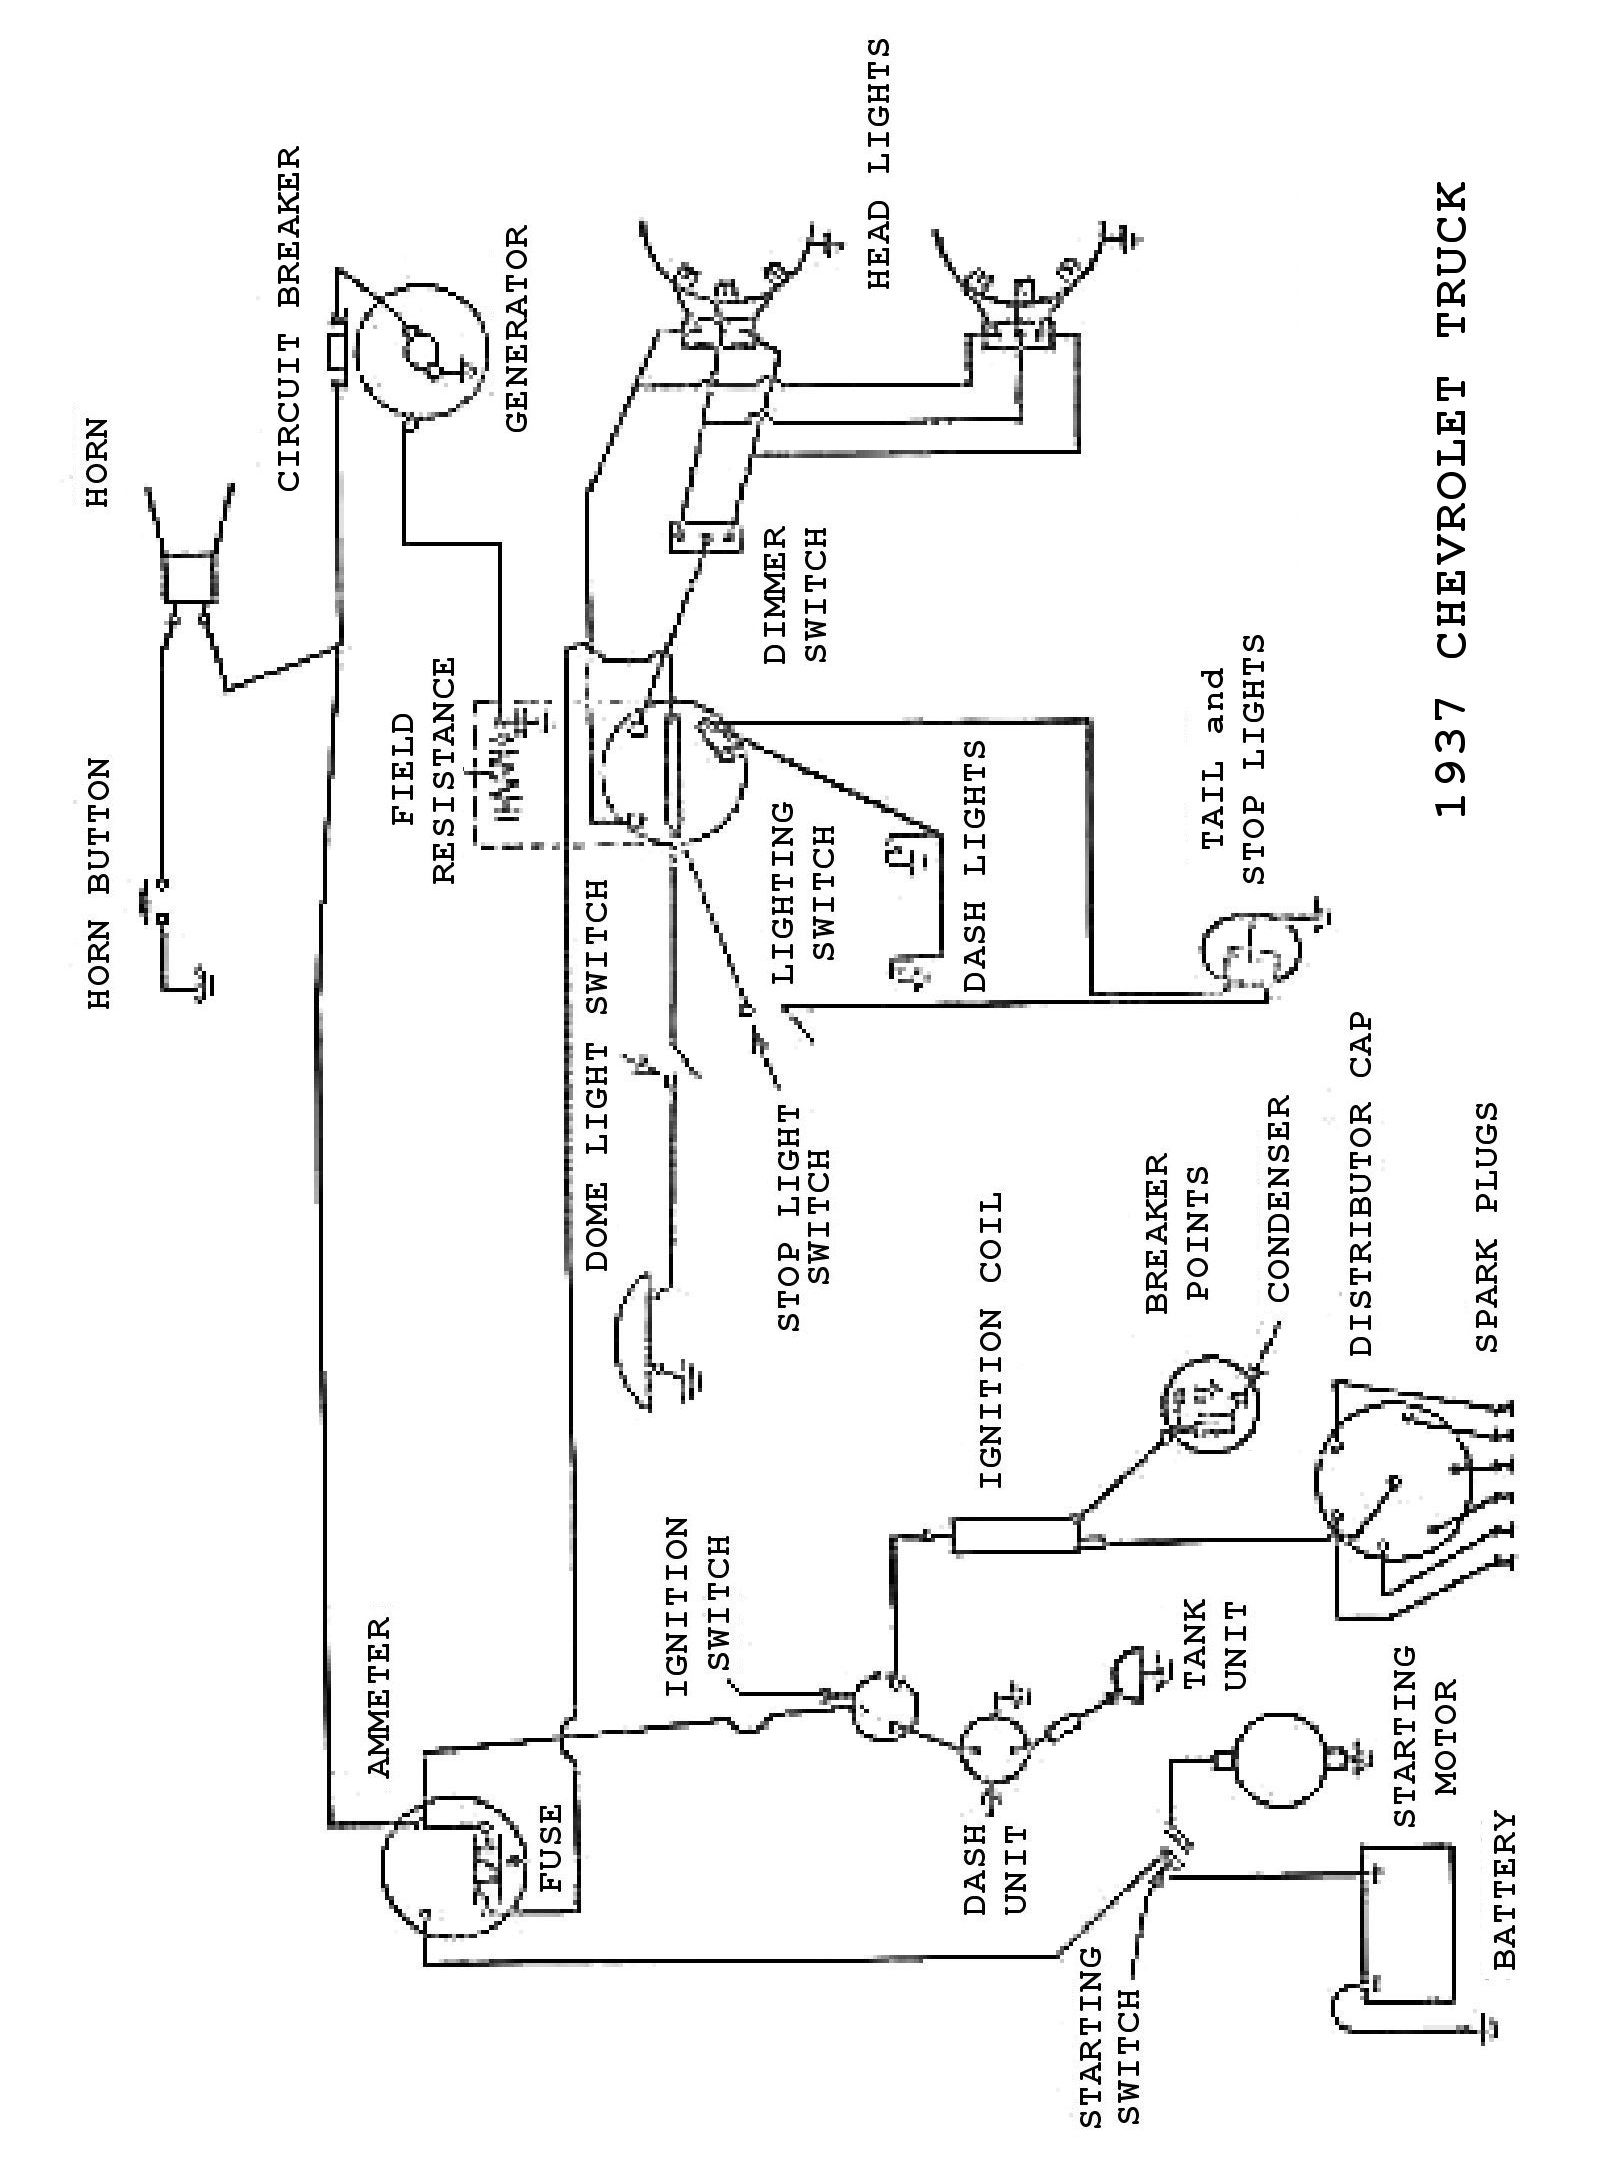 37truck wiring diagram for a 1937 chevy truck wiring diagram simonand 66 Chevy Headlight Switch Wiring Diagram at couponss.co